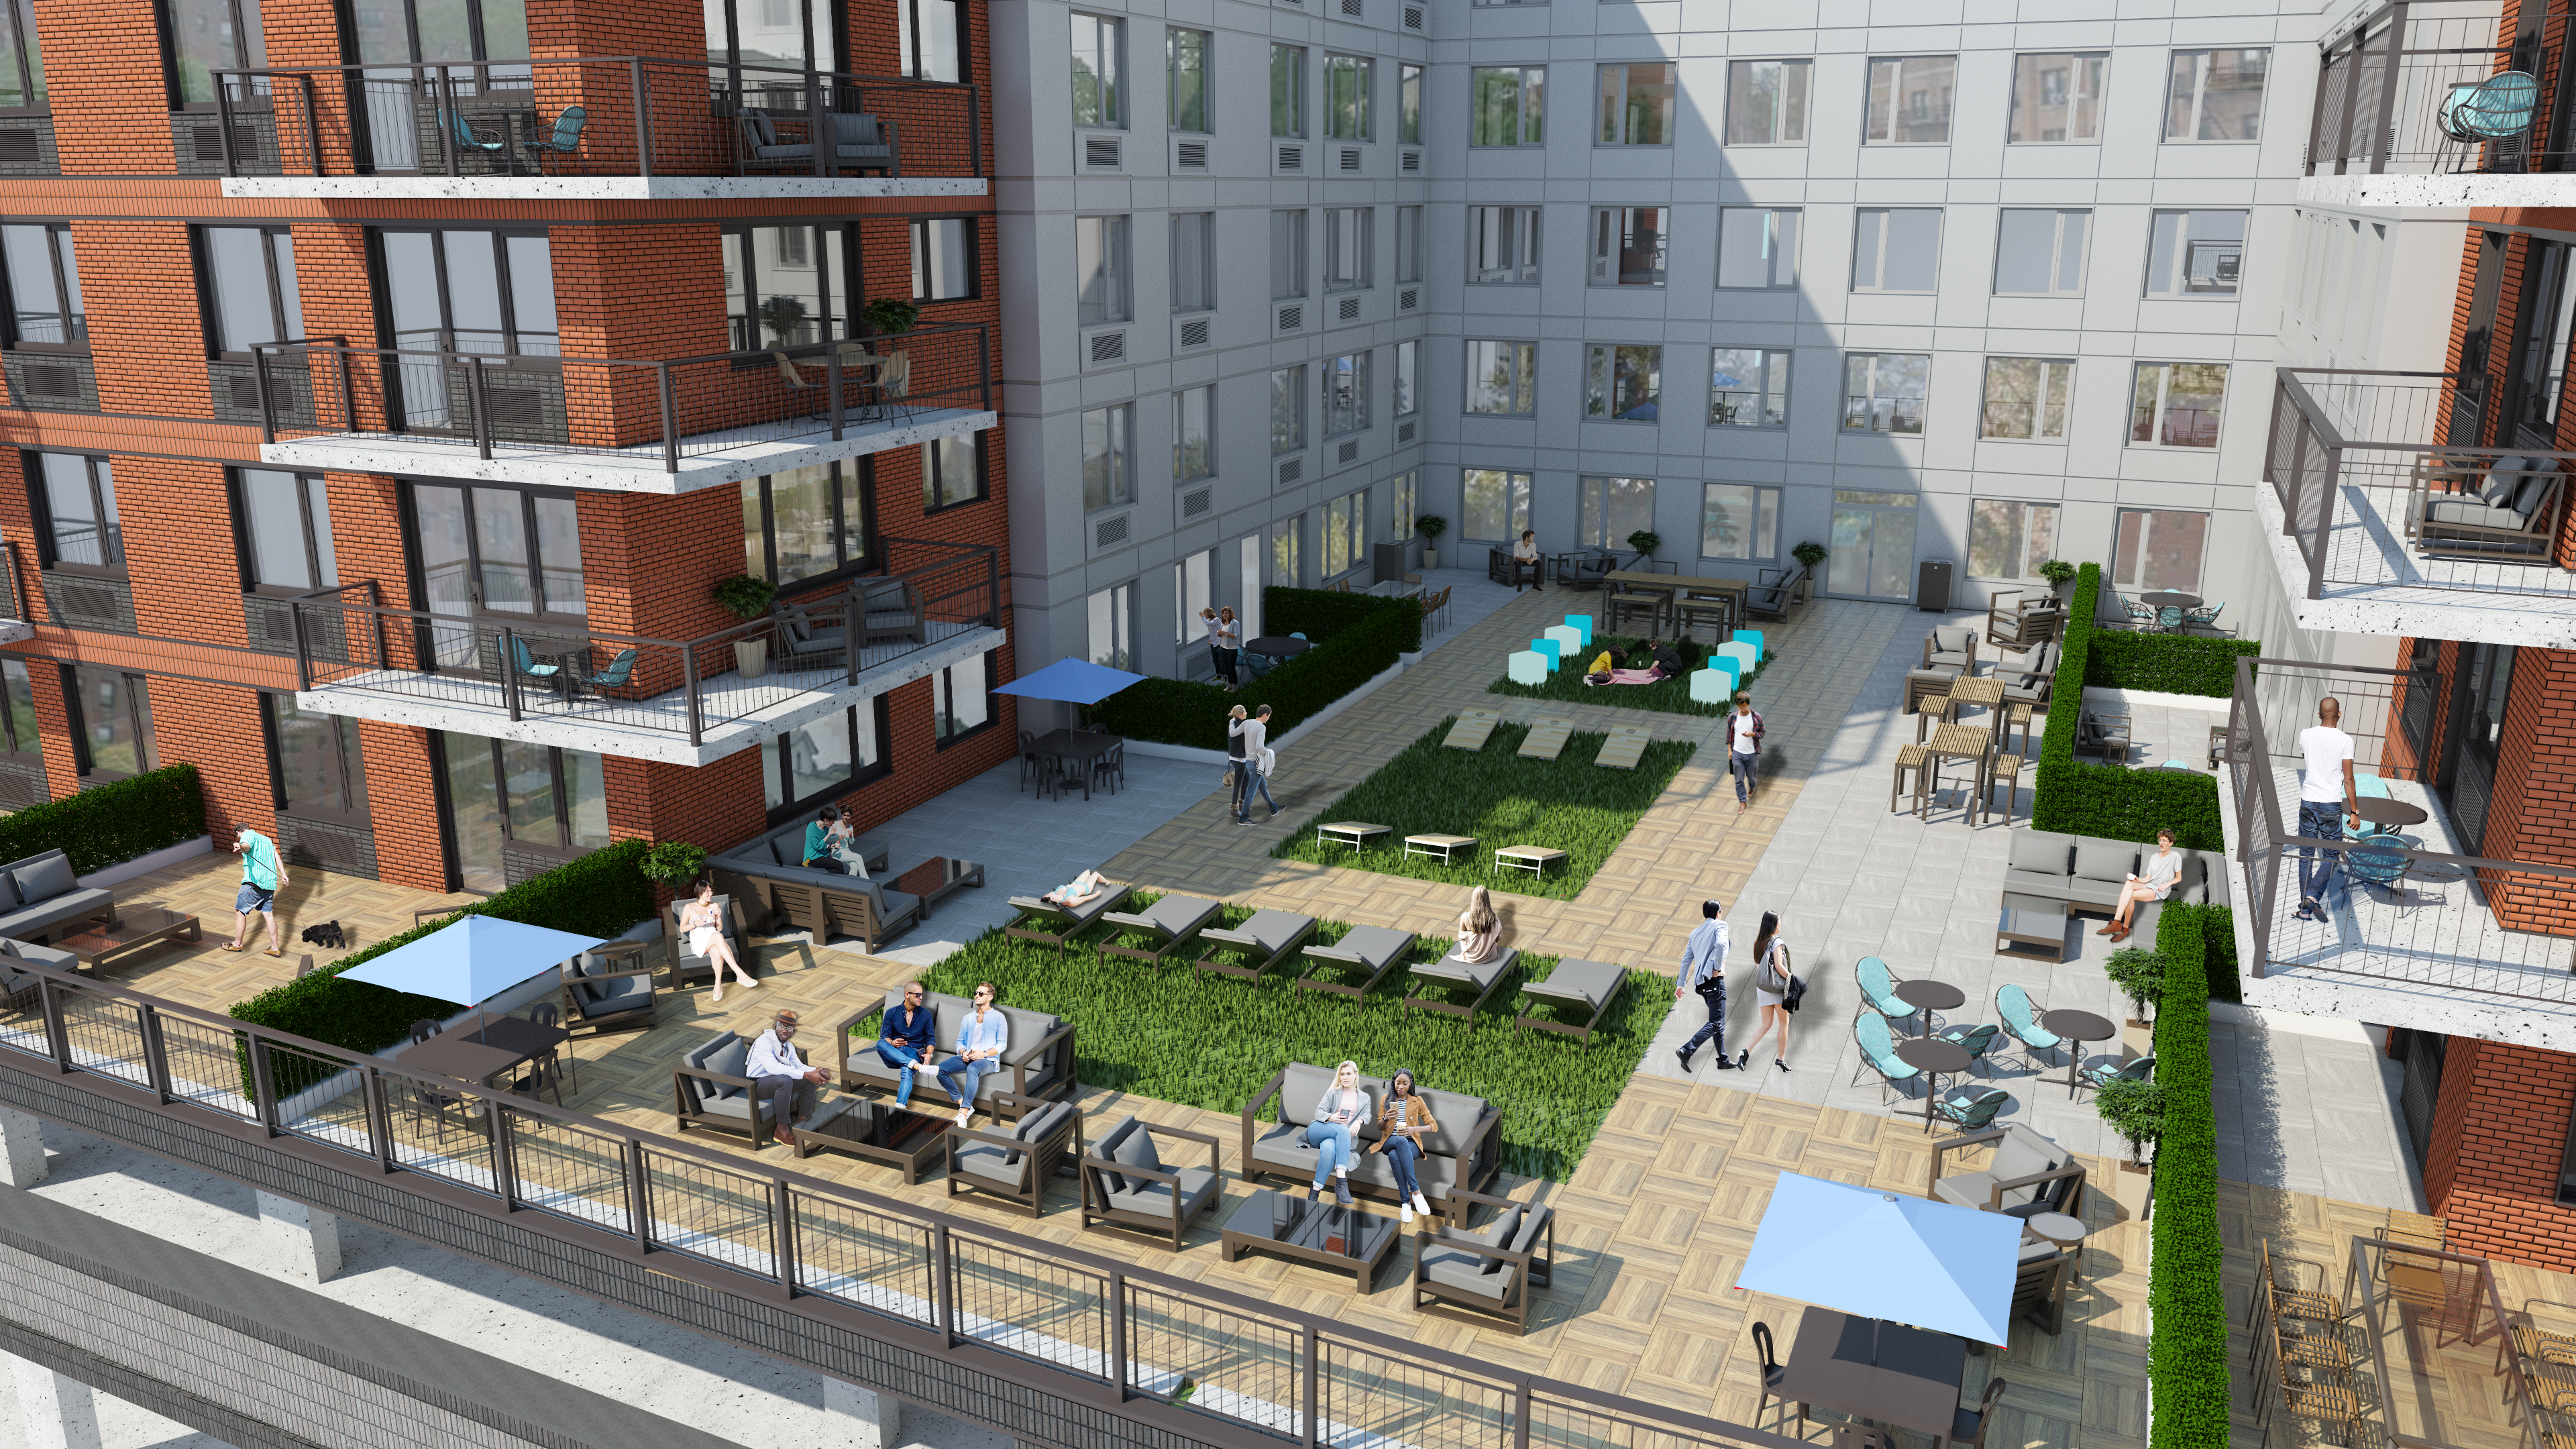 Interior Courtyard Rendering